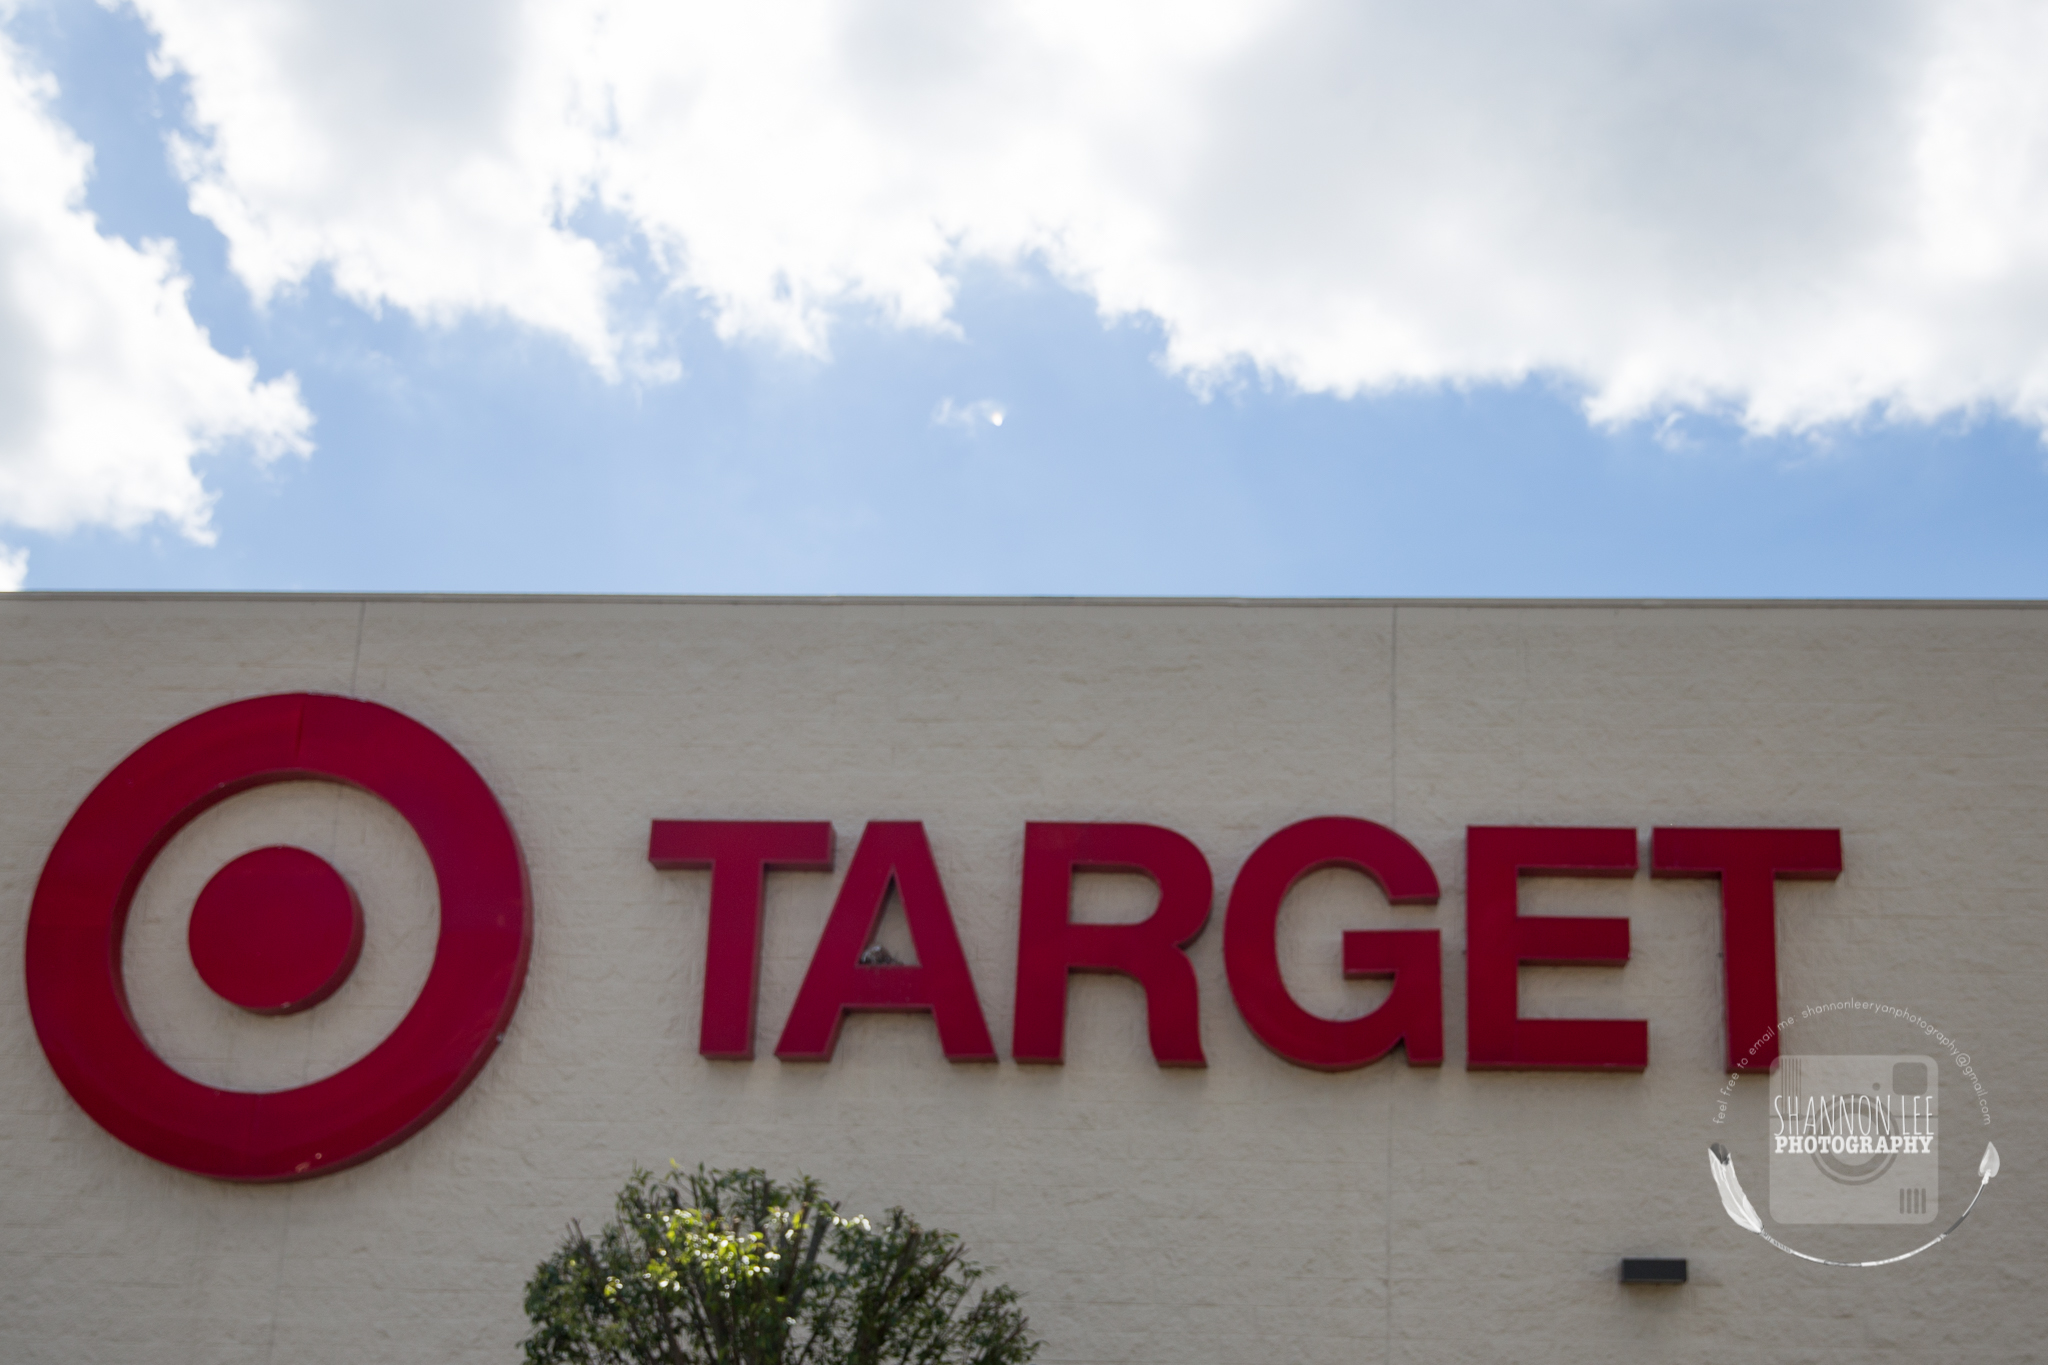 We love our Target in Medford, NY!